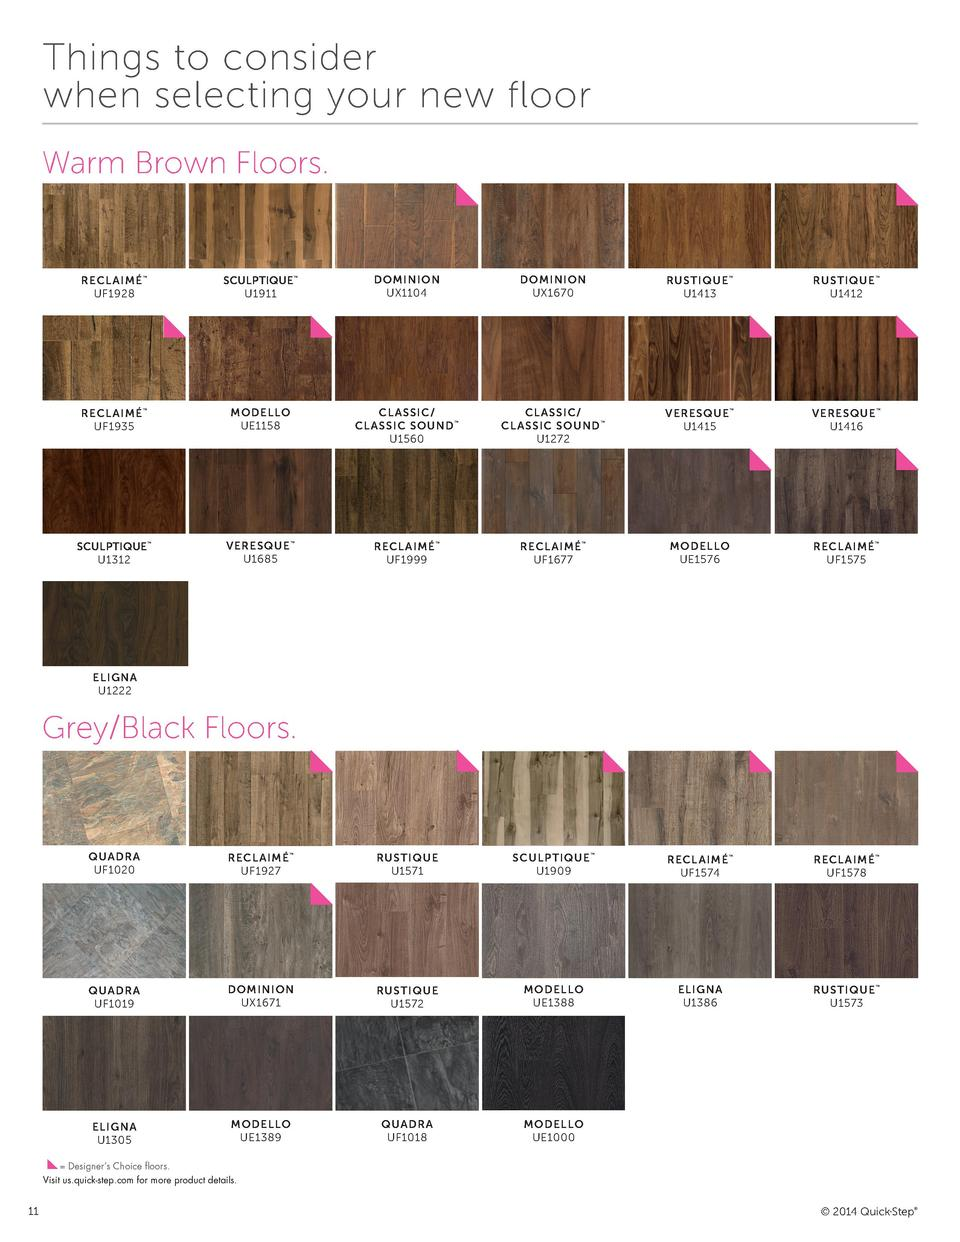 Things to consider when selecting your new floor Warm Brown Floors.  RECL AIM   UF1928       RECL AIM   UF1935       SCULP...